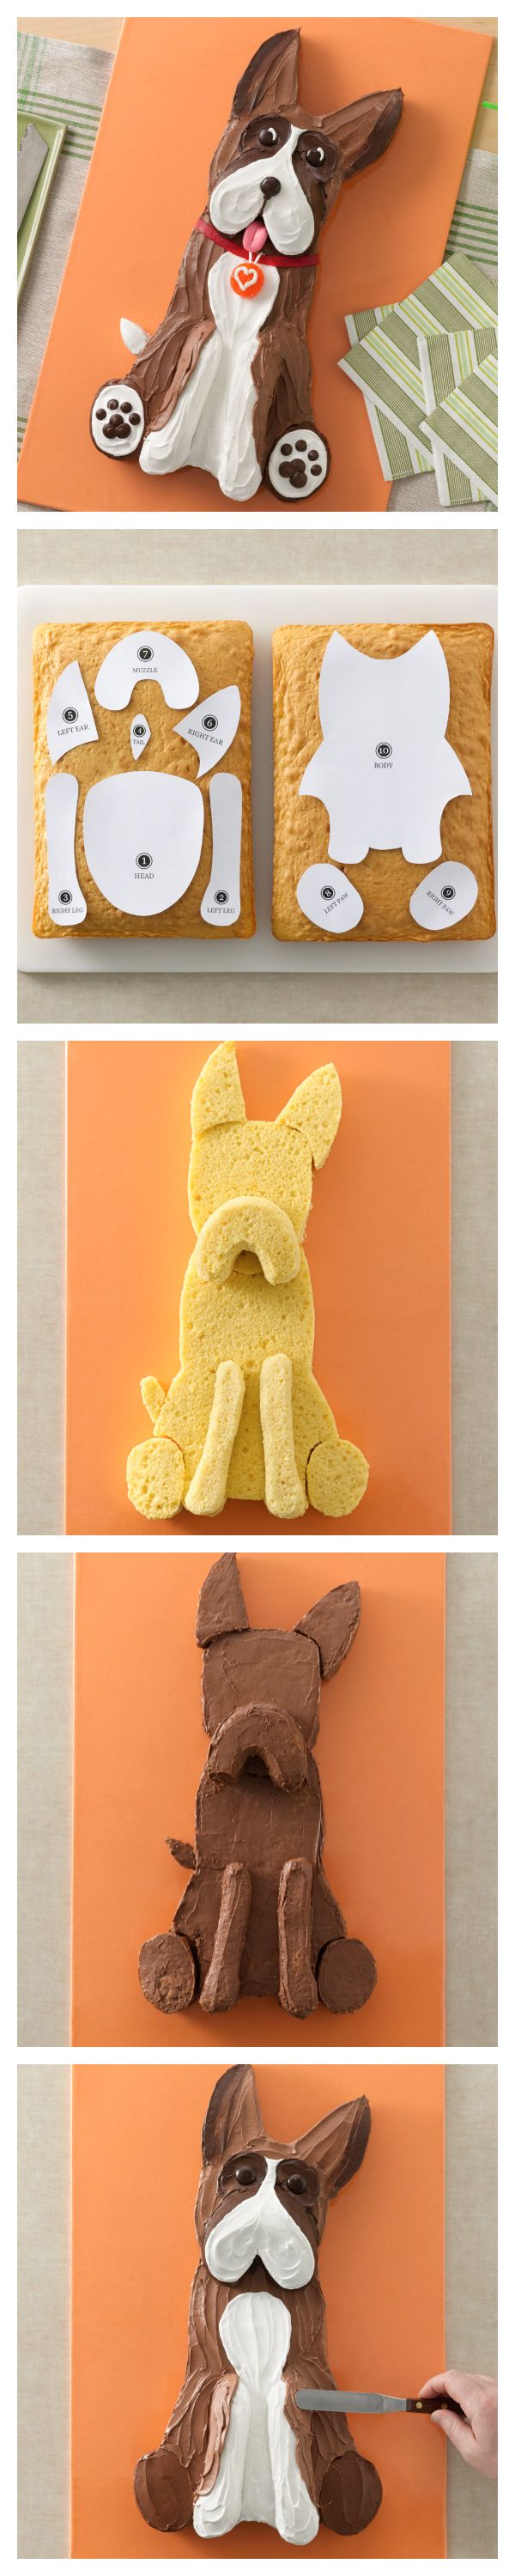 Wag some tails with this Boxer Dog Cake and template!